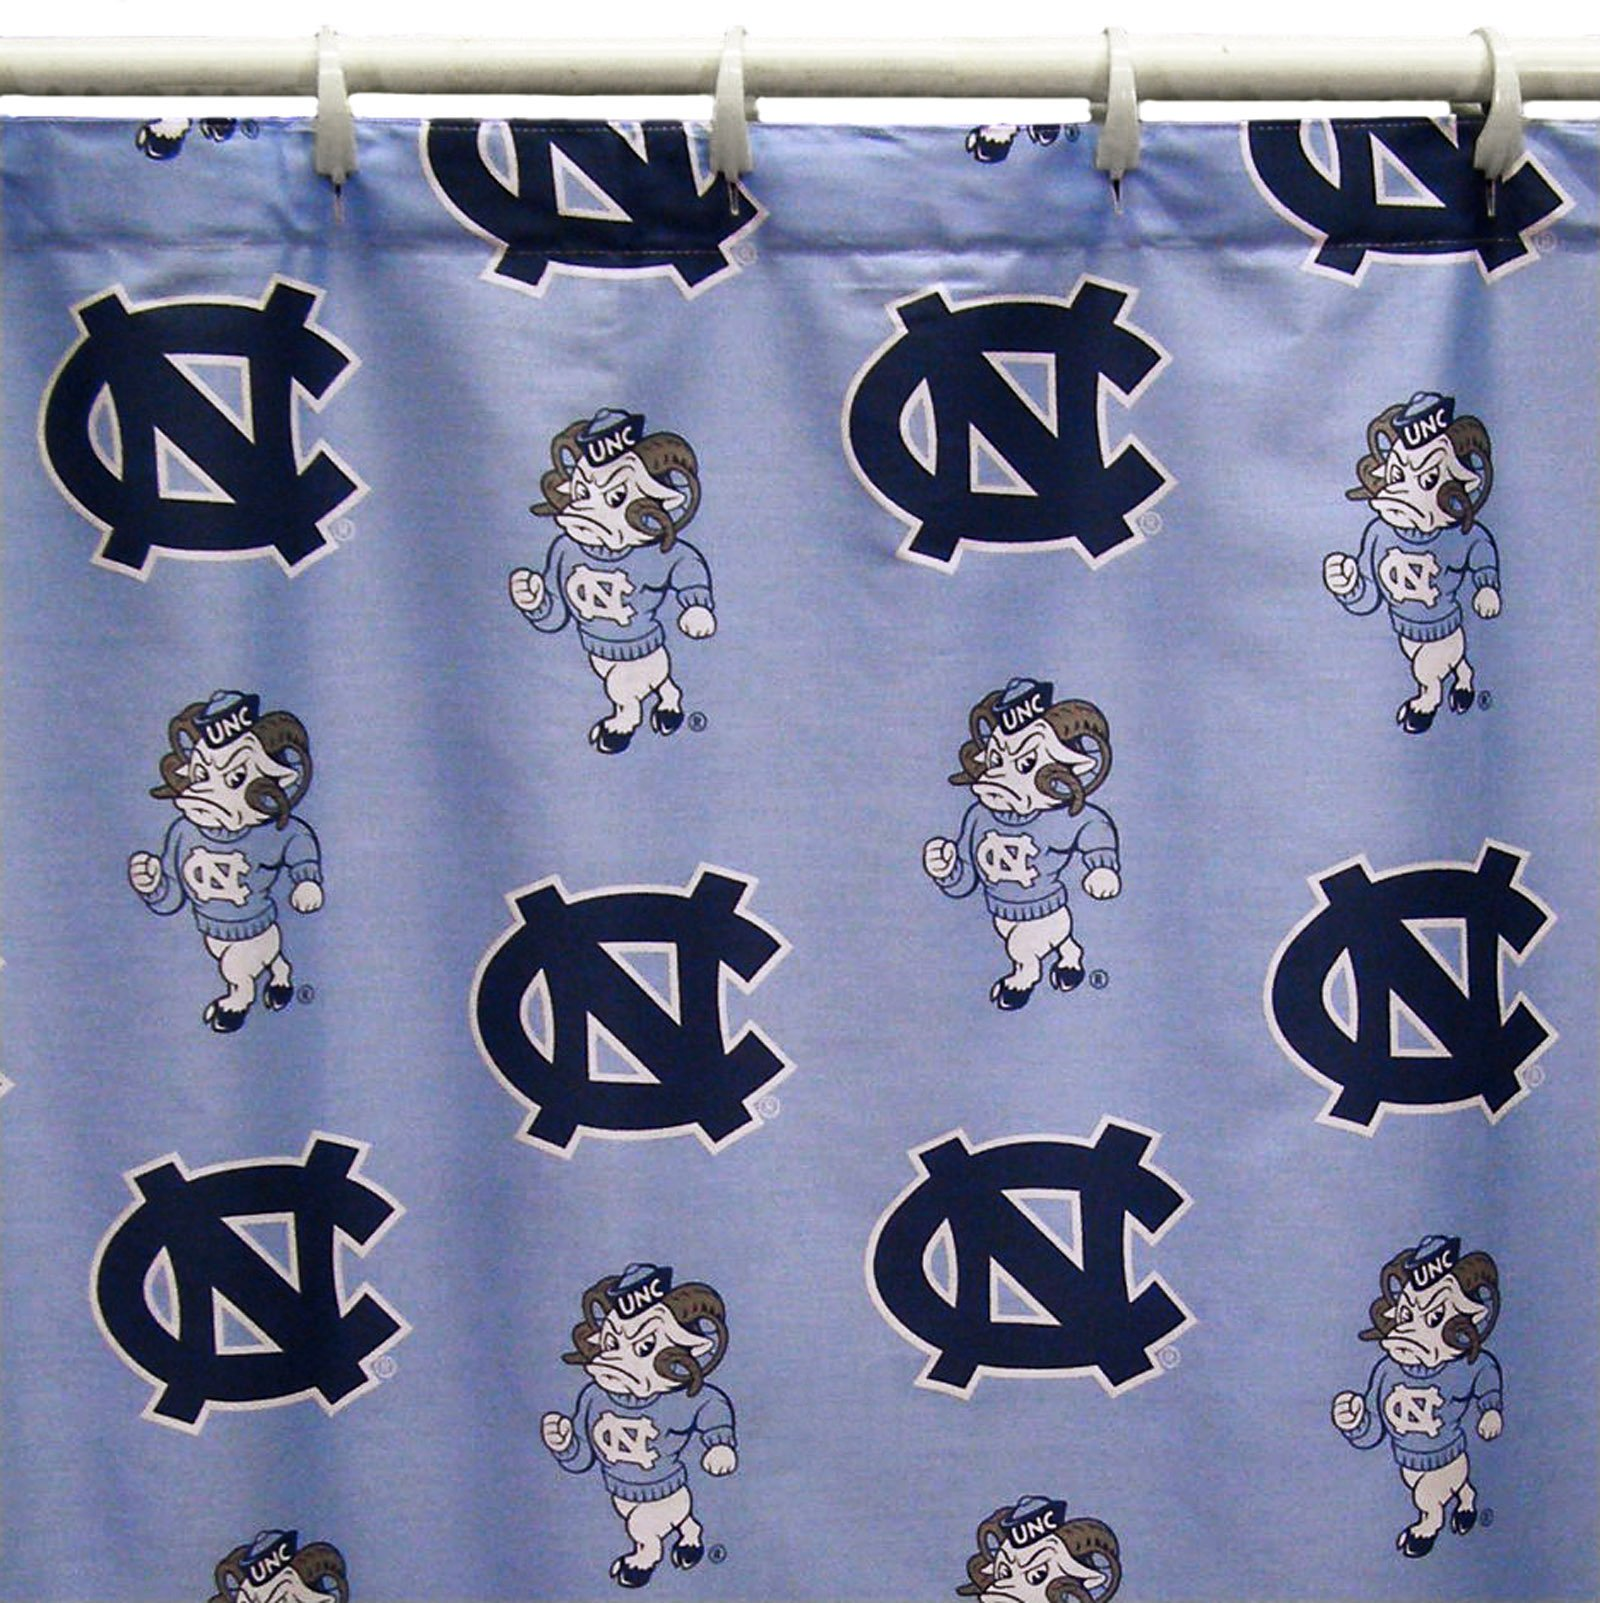 North Carolina Tar Heels Shower Curtain Cover Plus a Matching Window Curtain Valance - Save Big By Bundling! by College Covers